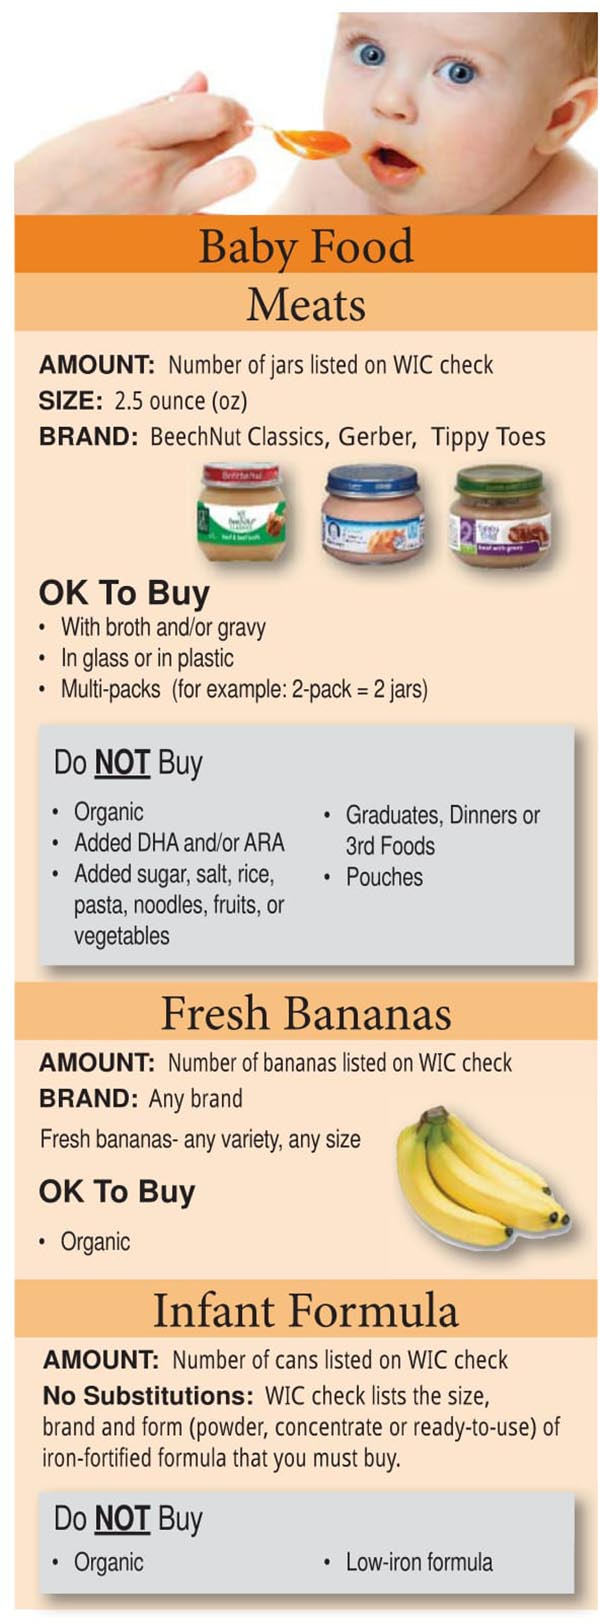 Colorado WIC Food List Baby Foods, Meat, Fresh Bananas and Infant Formula